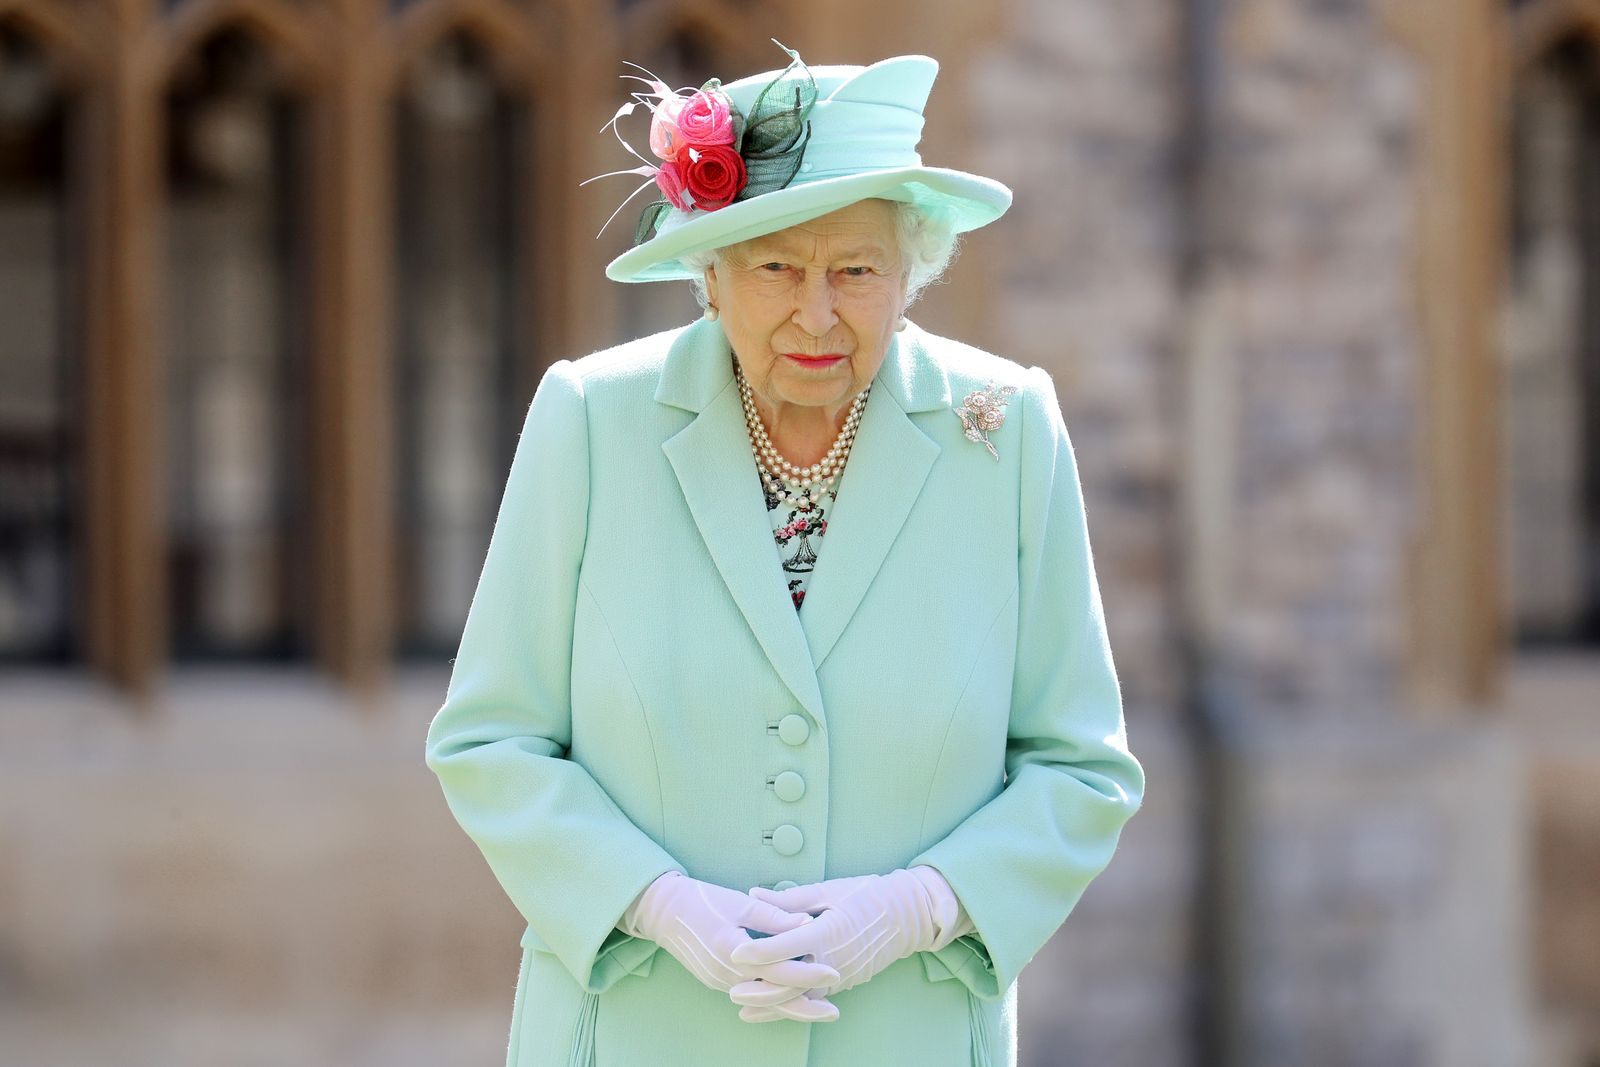 Queen Elizabeth II poses after awarding Captain Sir Thomas Moore with the insignia of Knight Bachelor at Windsor Castle on July 17, 2020 | Photo: Getty Images